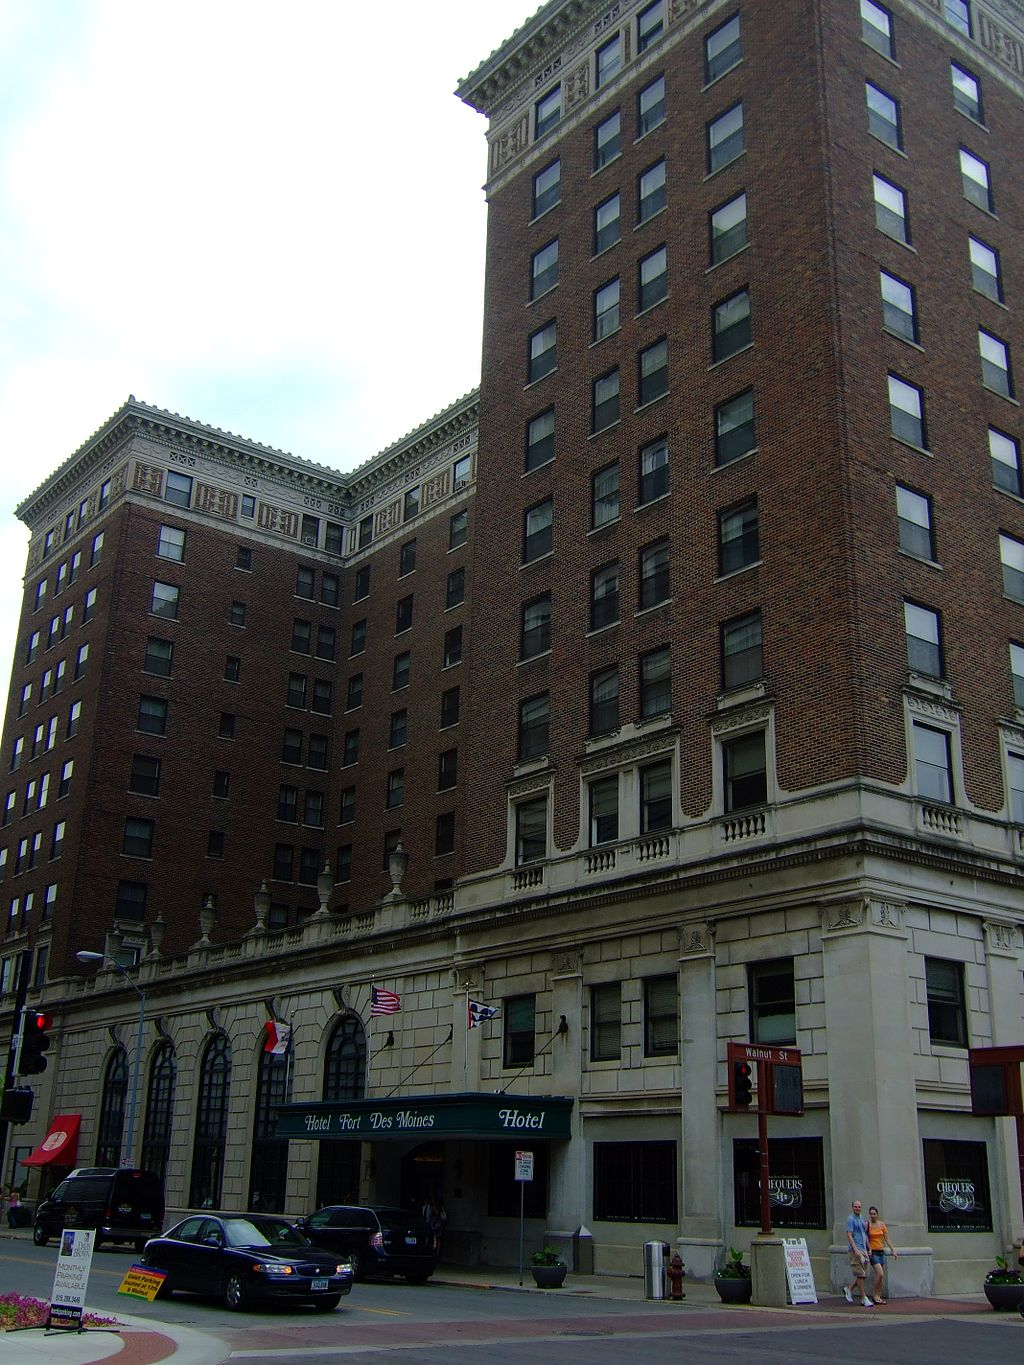 Hotel Fort Des Moines was built in 1919 and has remained a key landmark in the city's history.